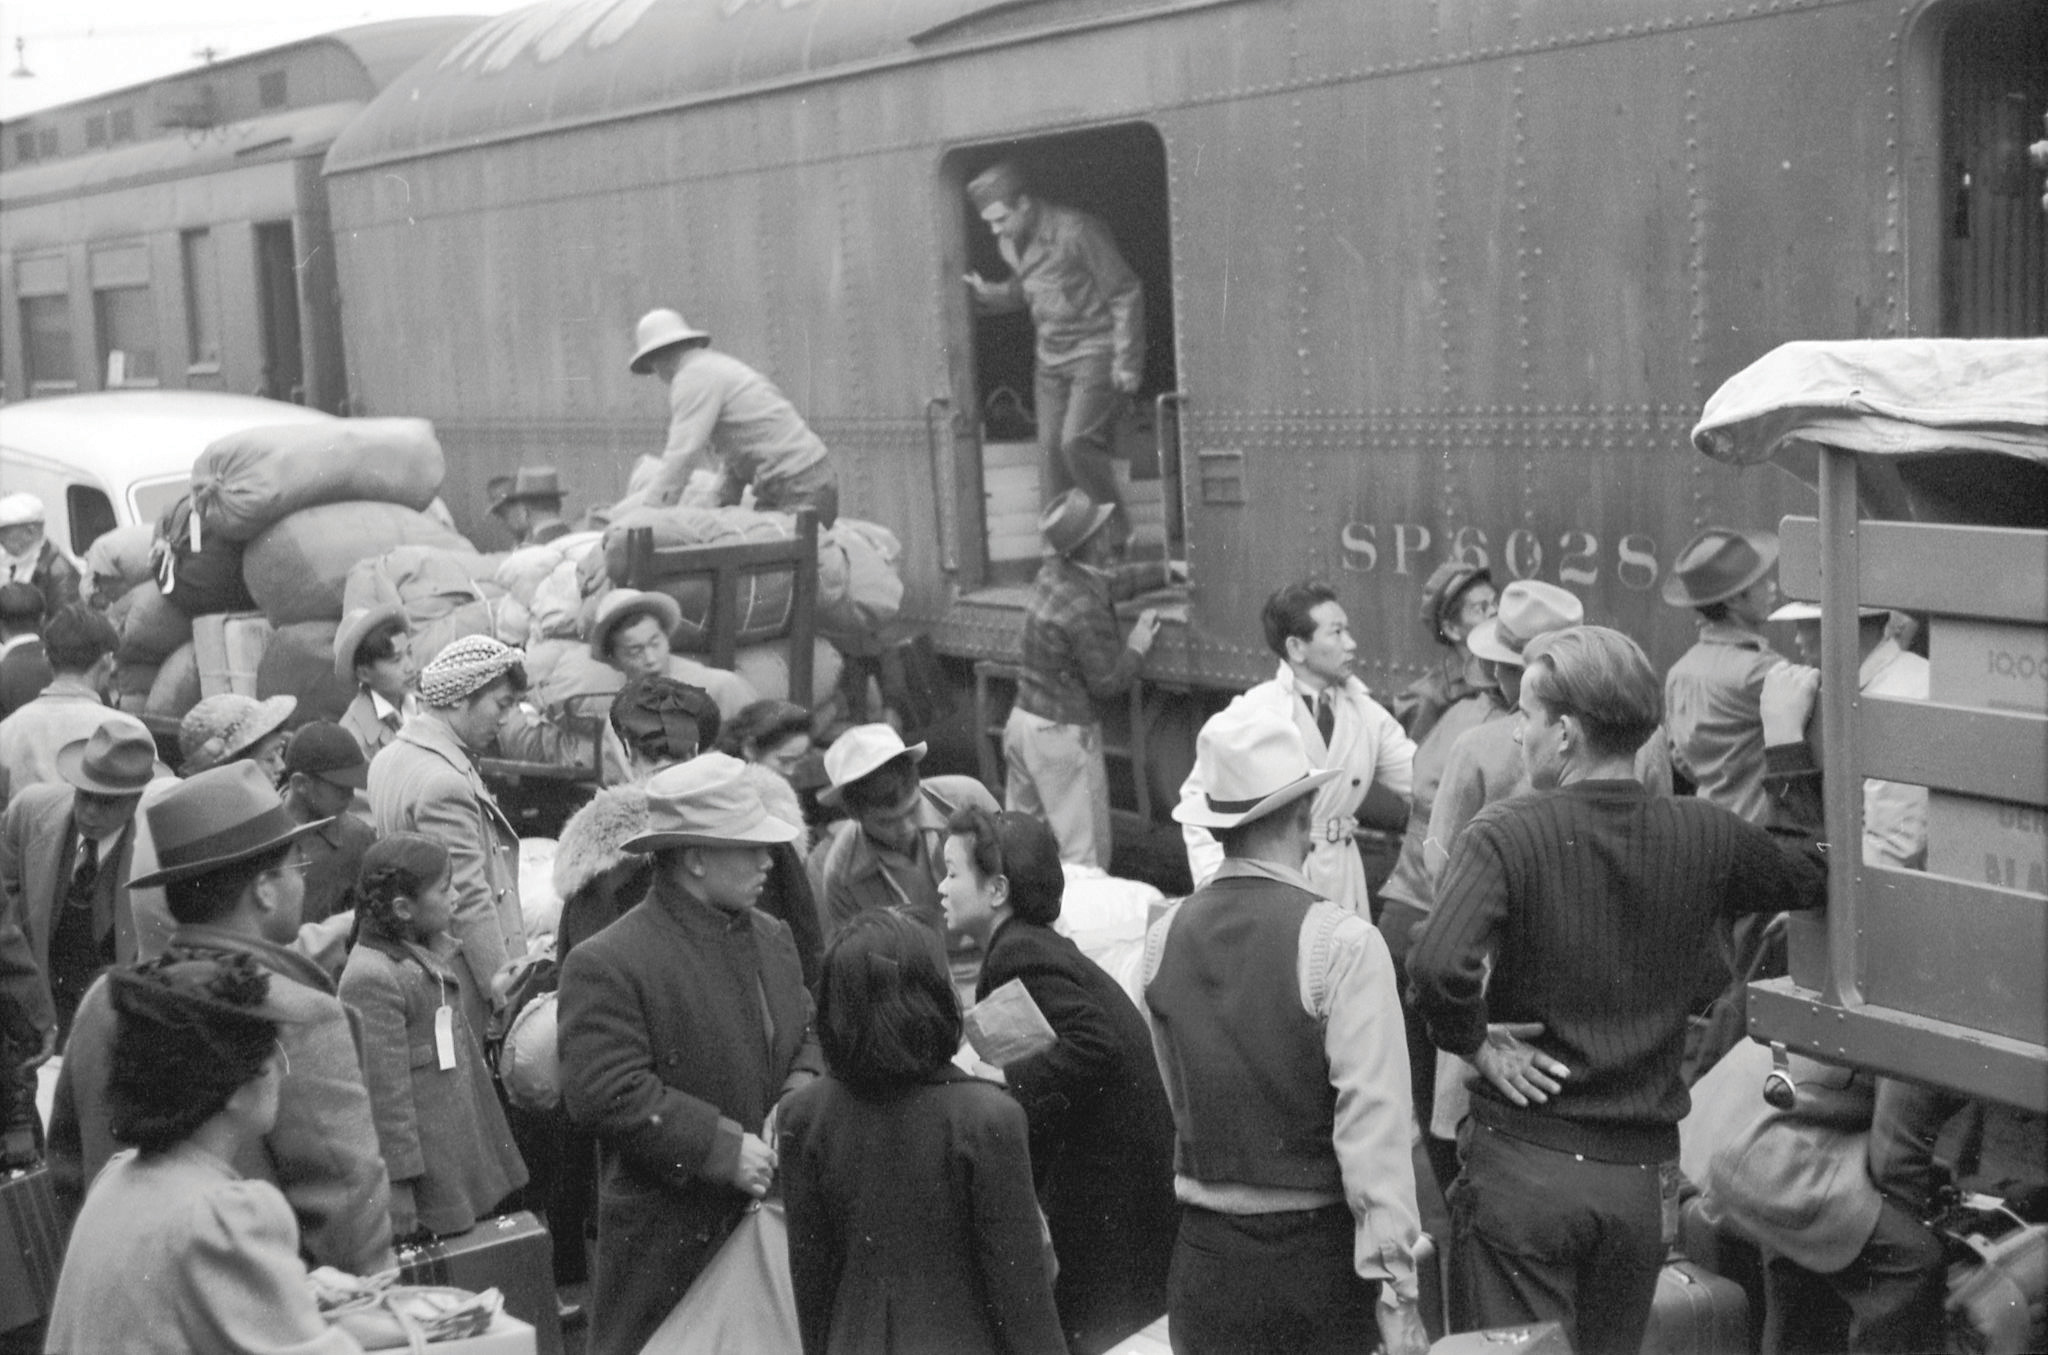 Japanese Americans being shipped to internment camps during World War II